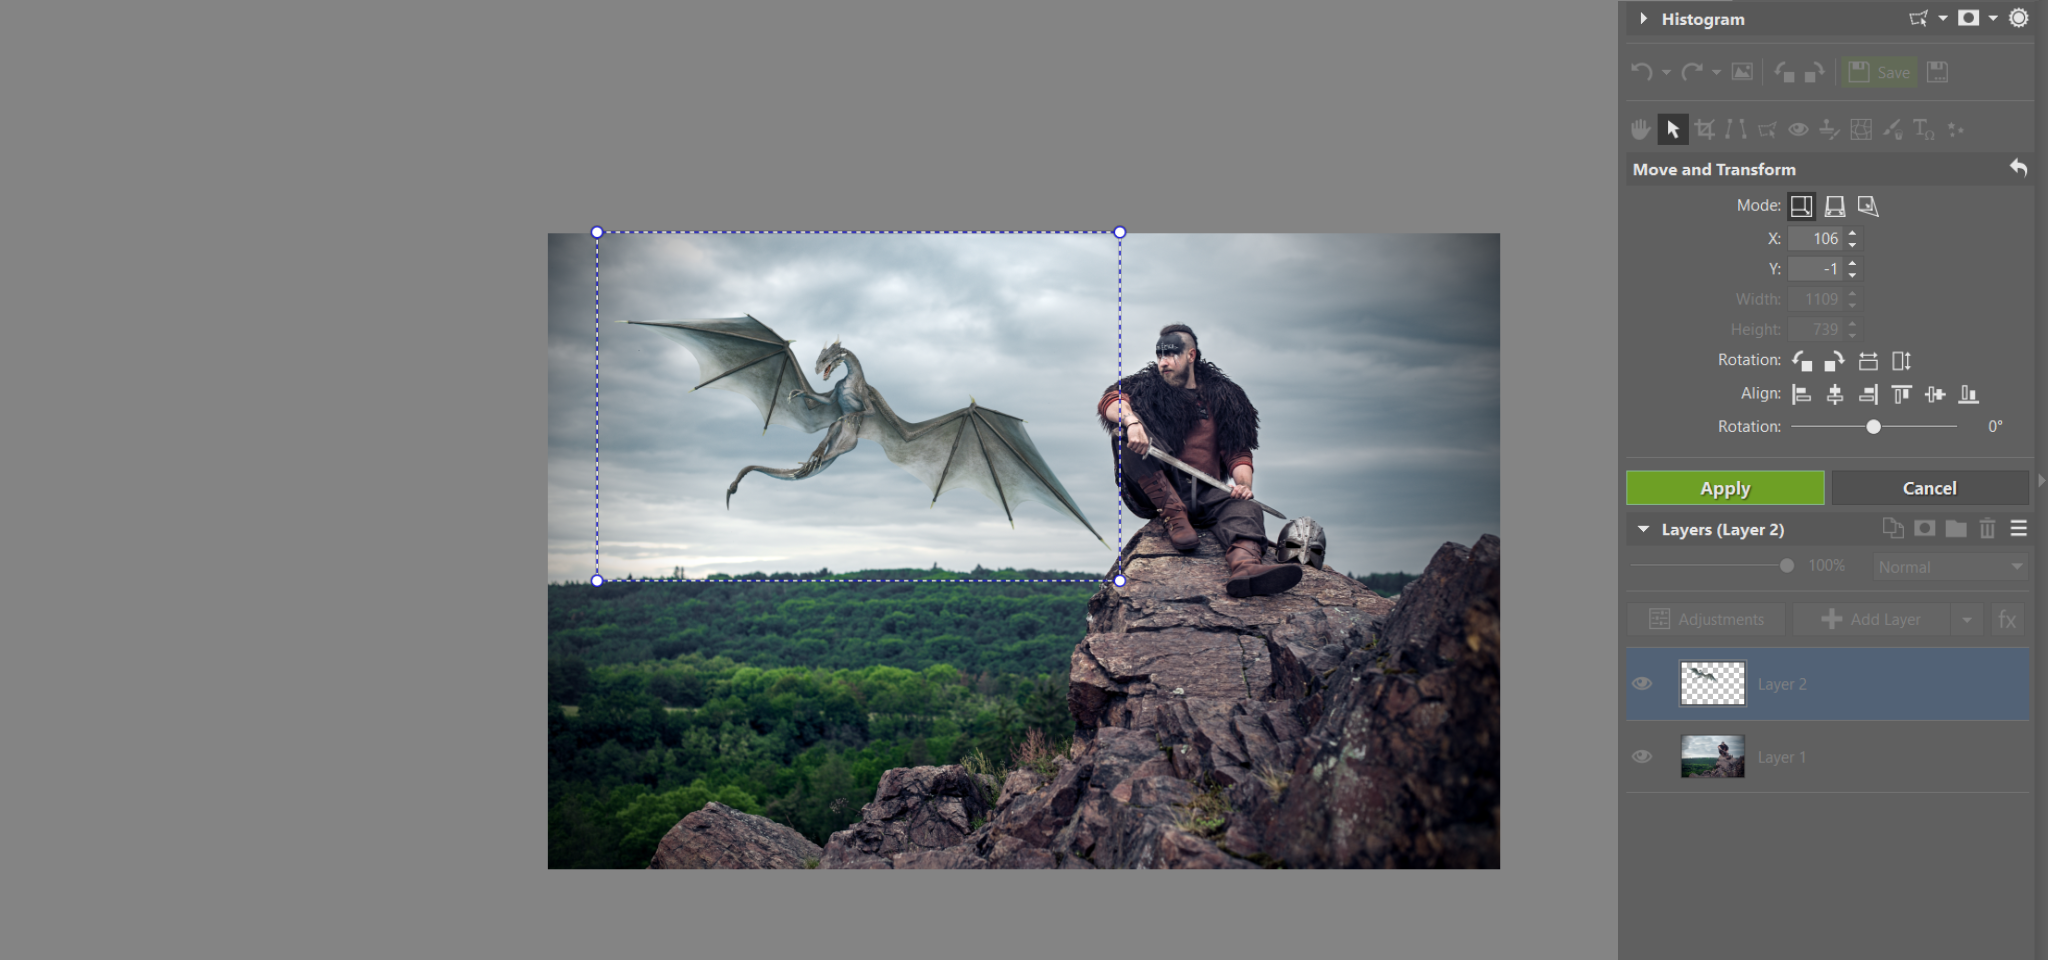 Five edits that every photo montage needs. Learn how to properly add objects to your photos